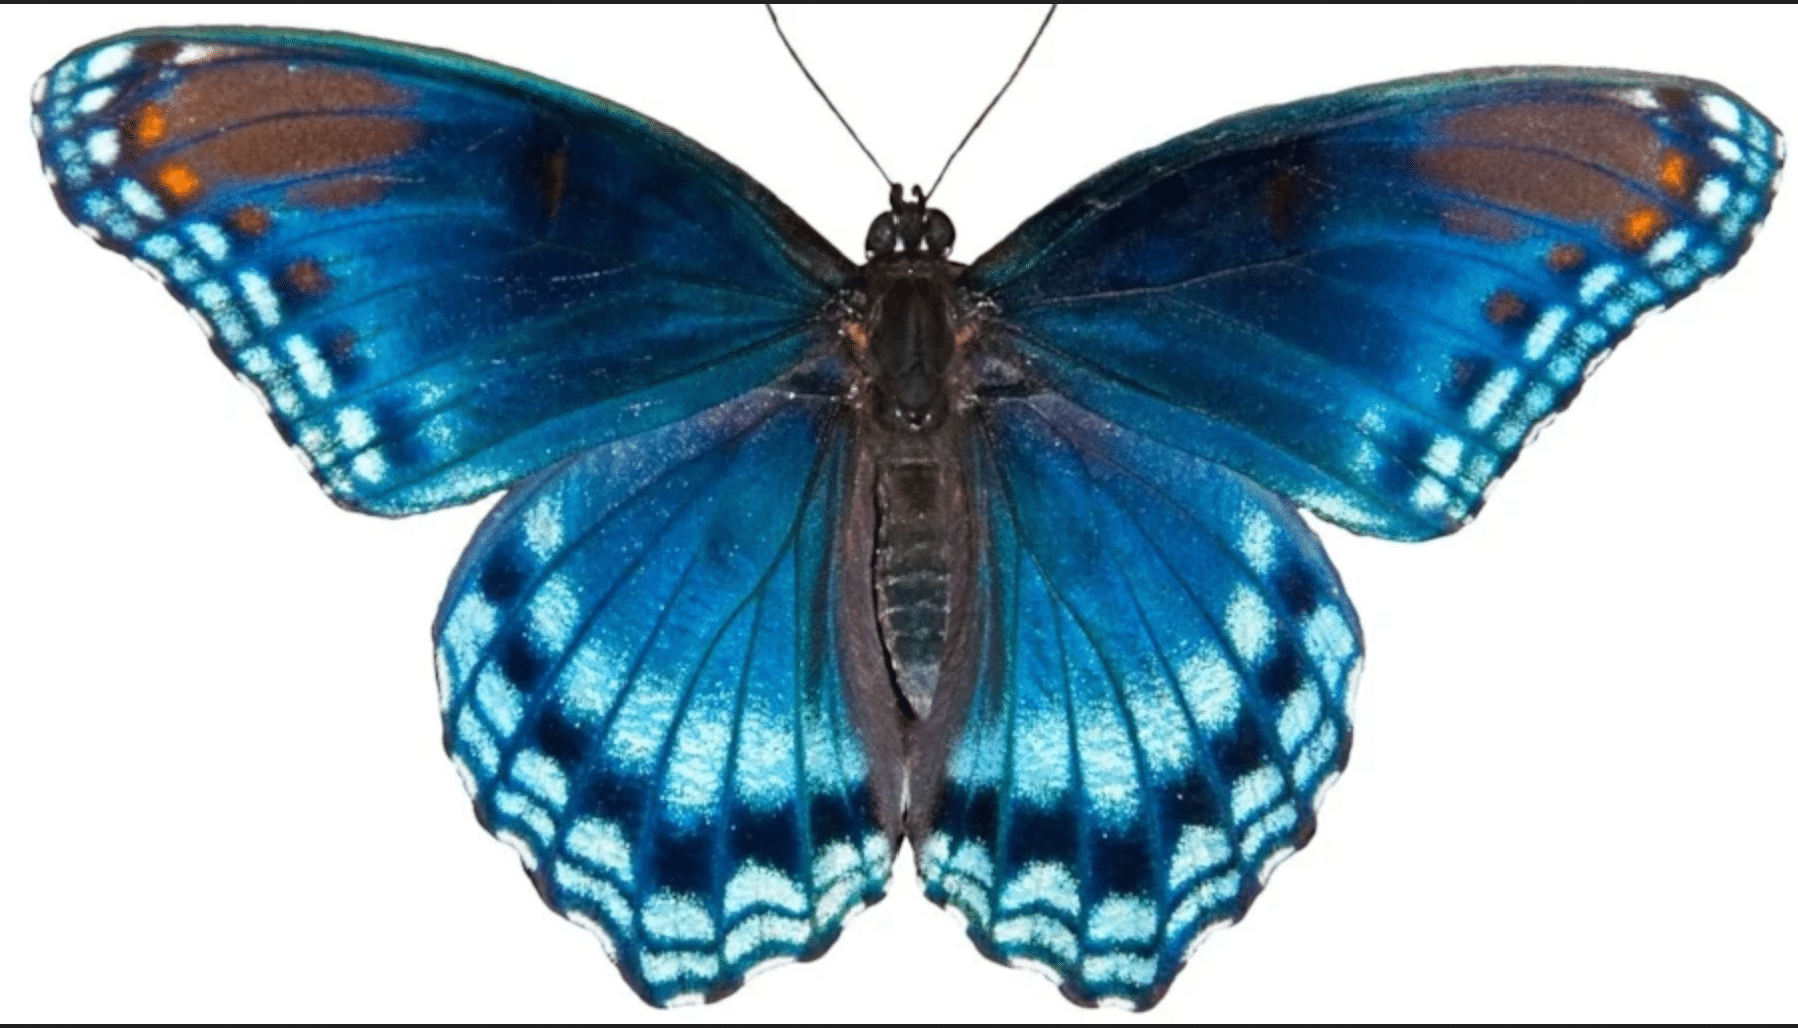 An image of a Red Spotted Purple Admiral butterfly.